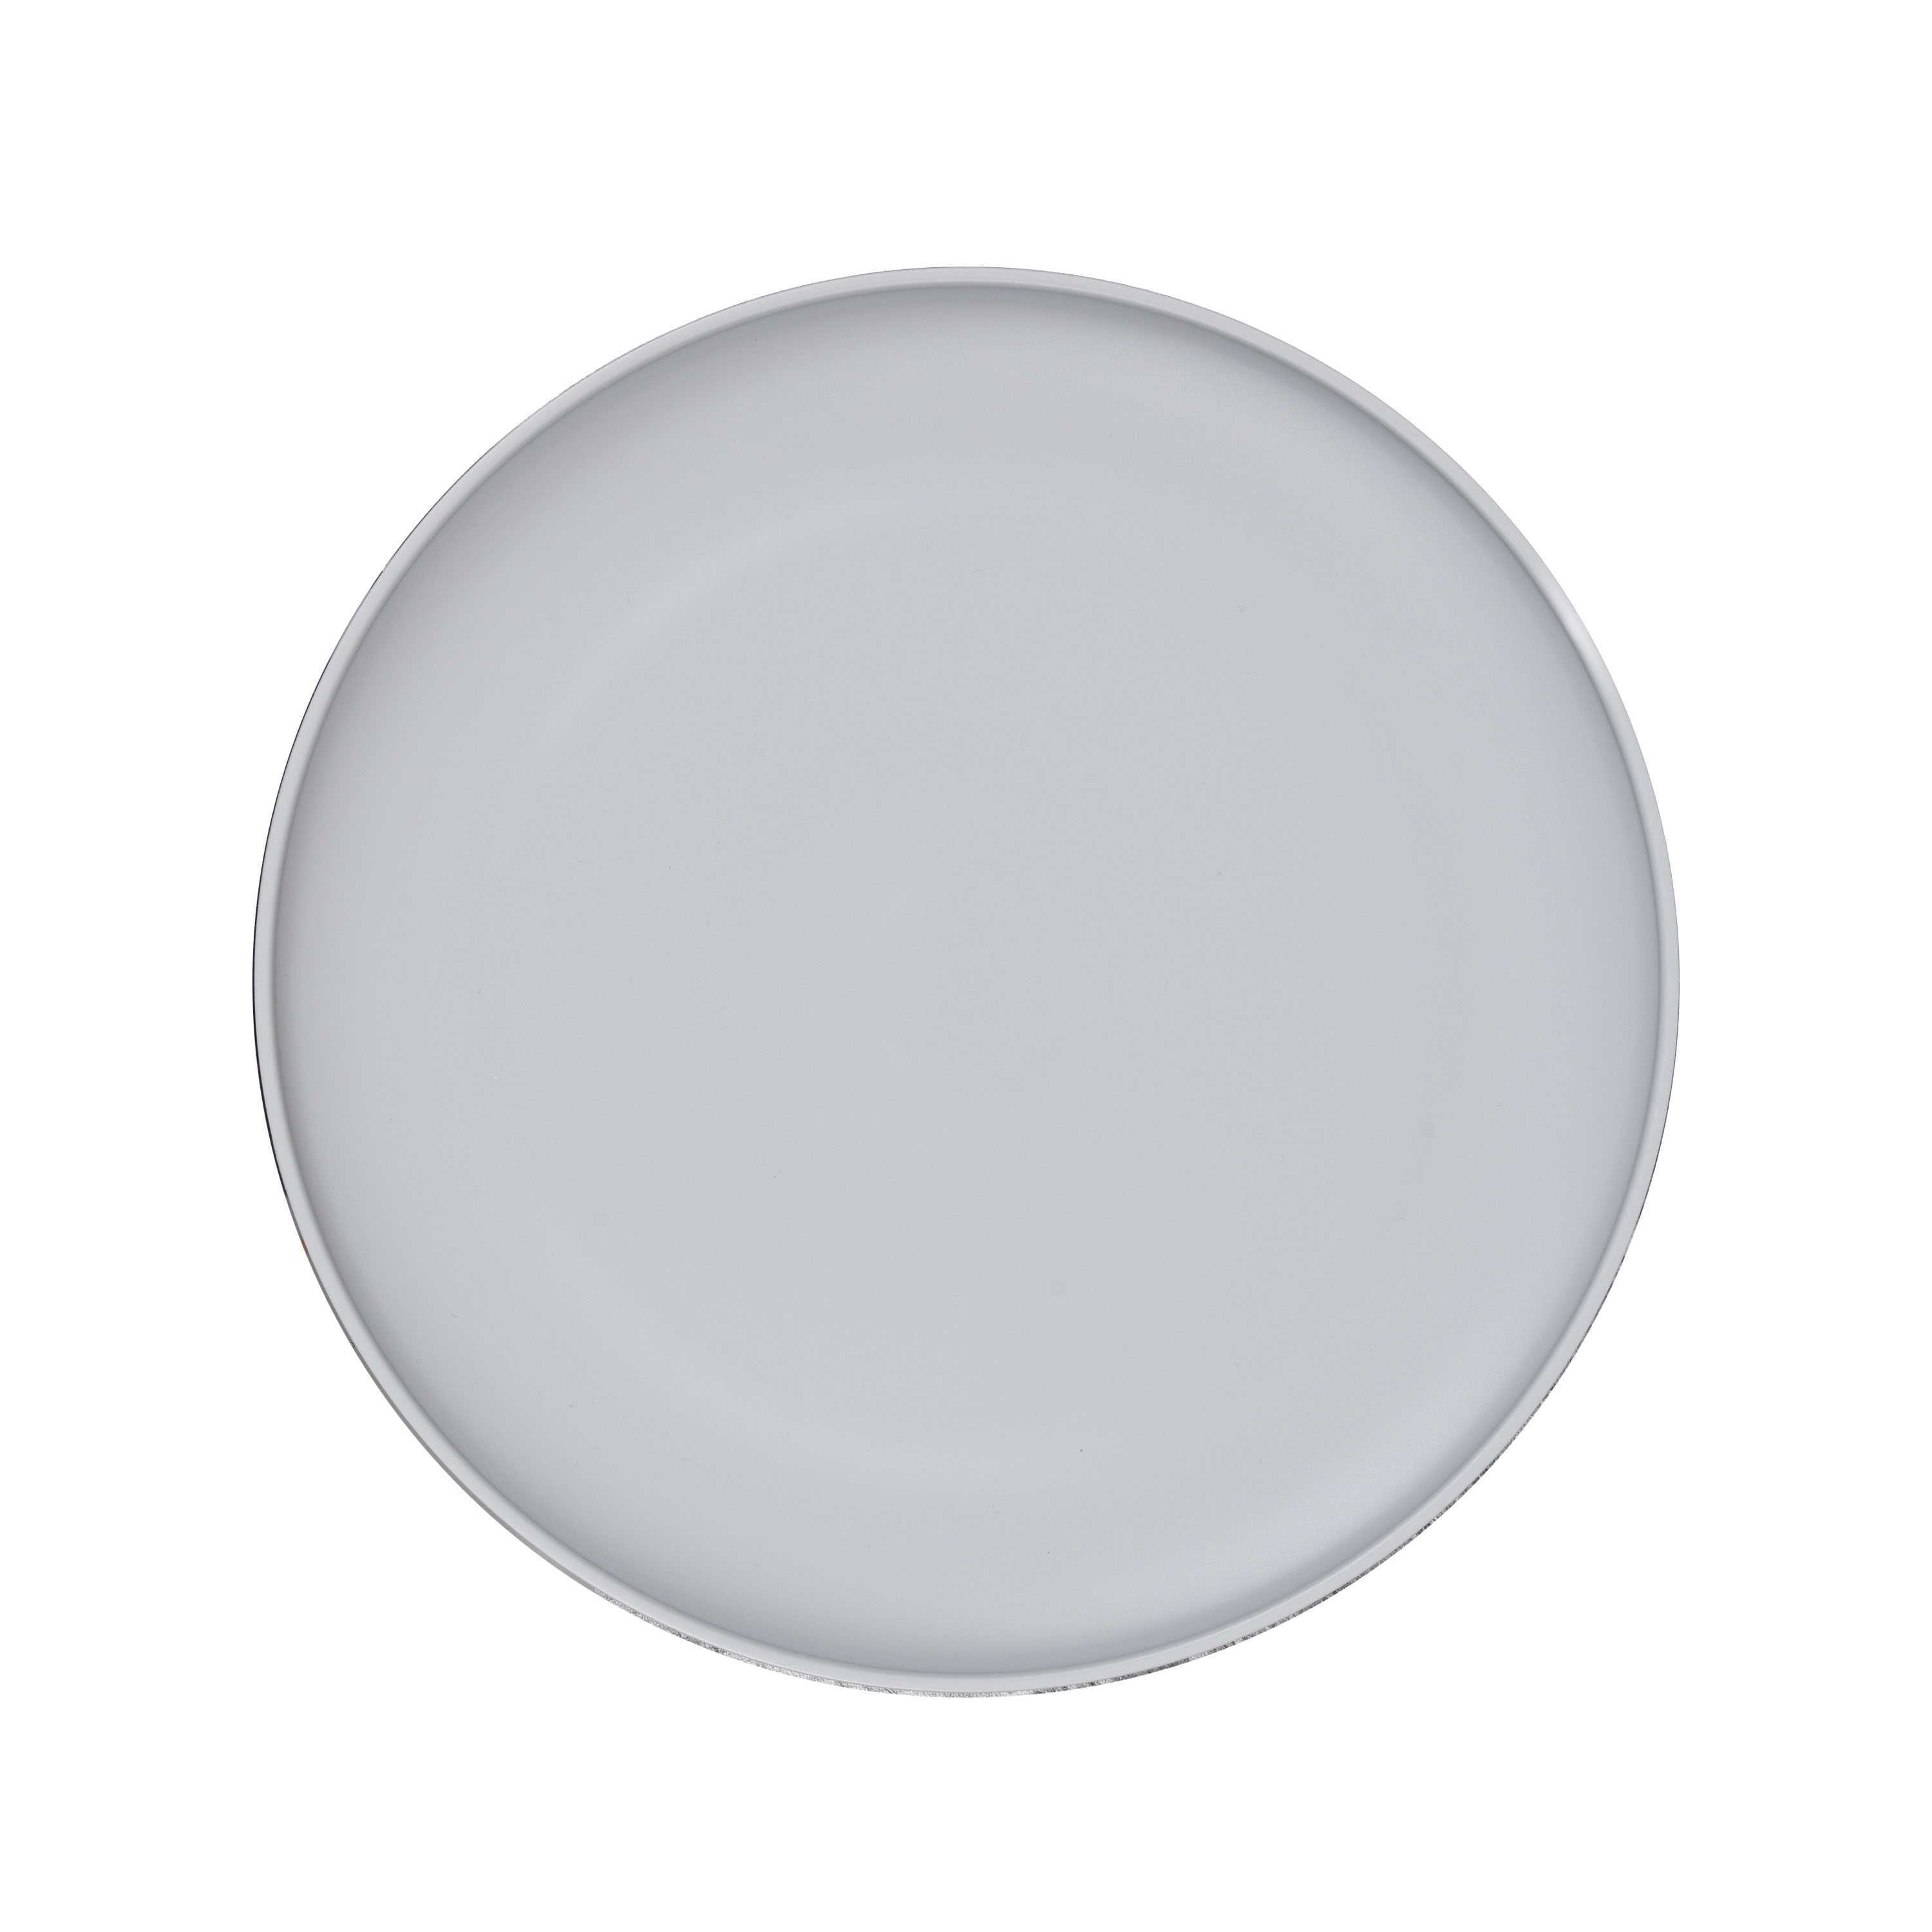 Mainstays 10 5 Gray Plate Walmart Inventory Checker